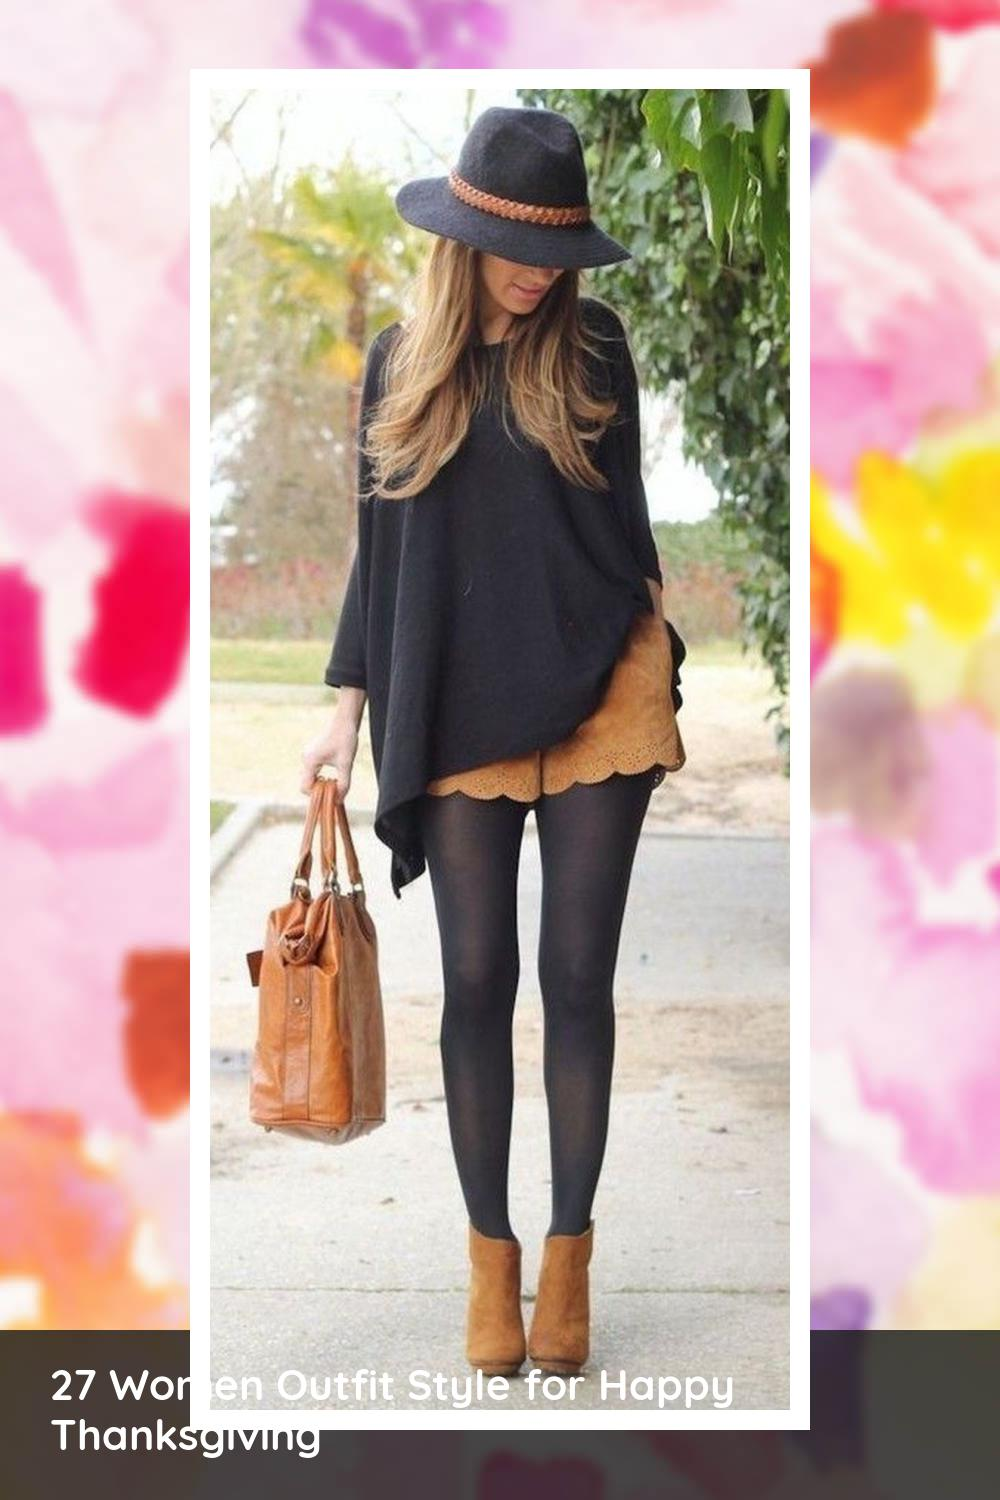 27 Women Outfit Style for Happy Thanksgiving 16